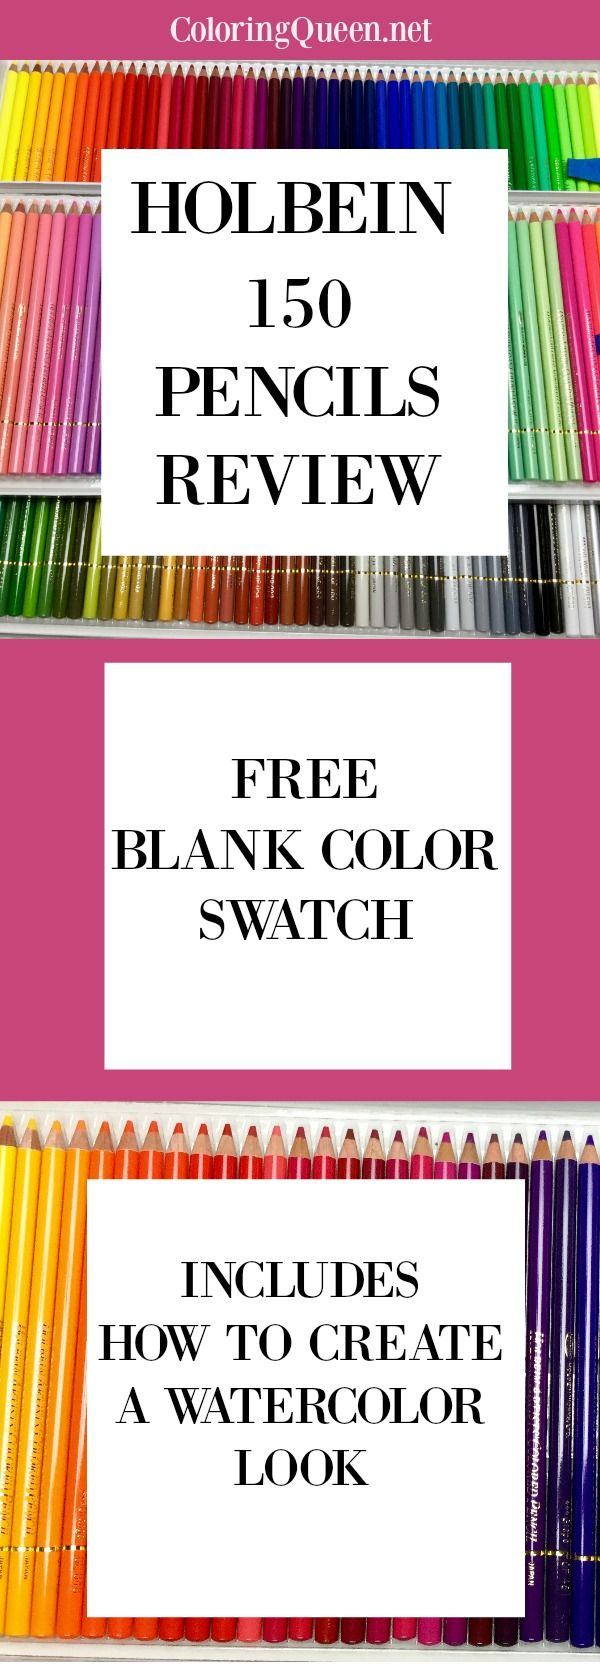 Holbein colored pencils 150 pc set review colour chart pc and see the holbein colored pencils 150 pc set review including watercolor effect and download your own colored pencil tutorialcolour chartcolored nvjuhfo Choice Image